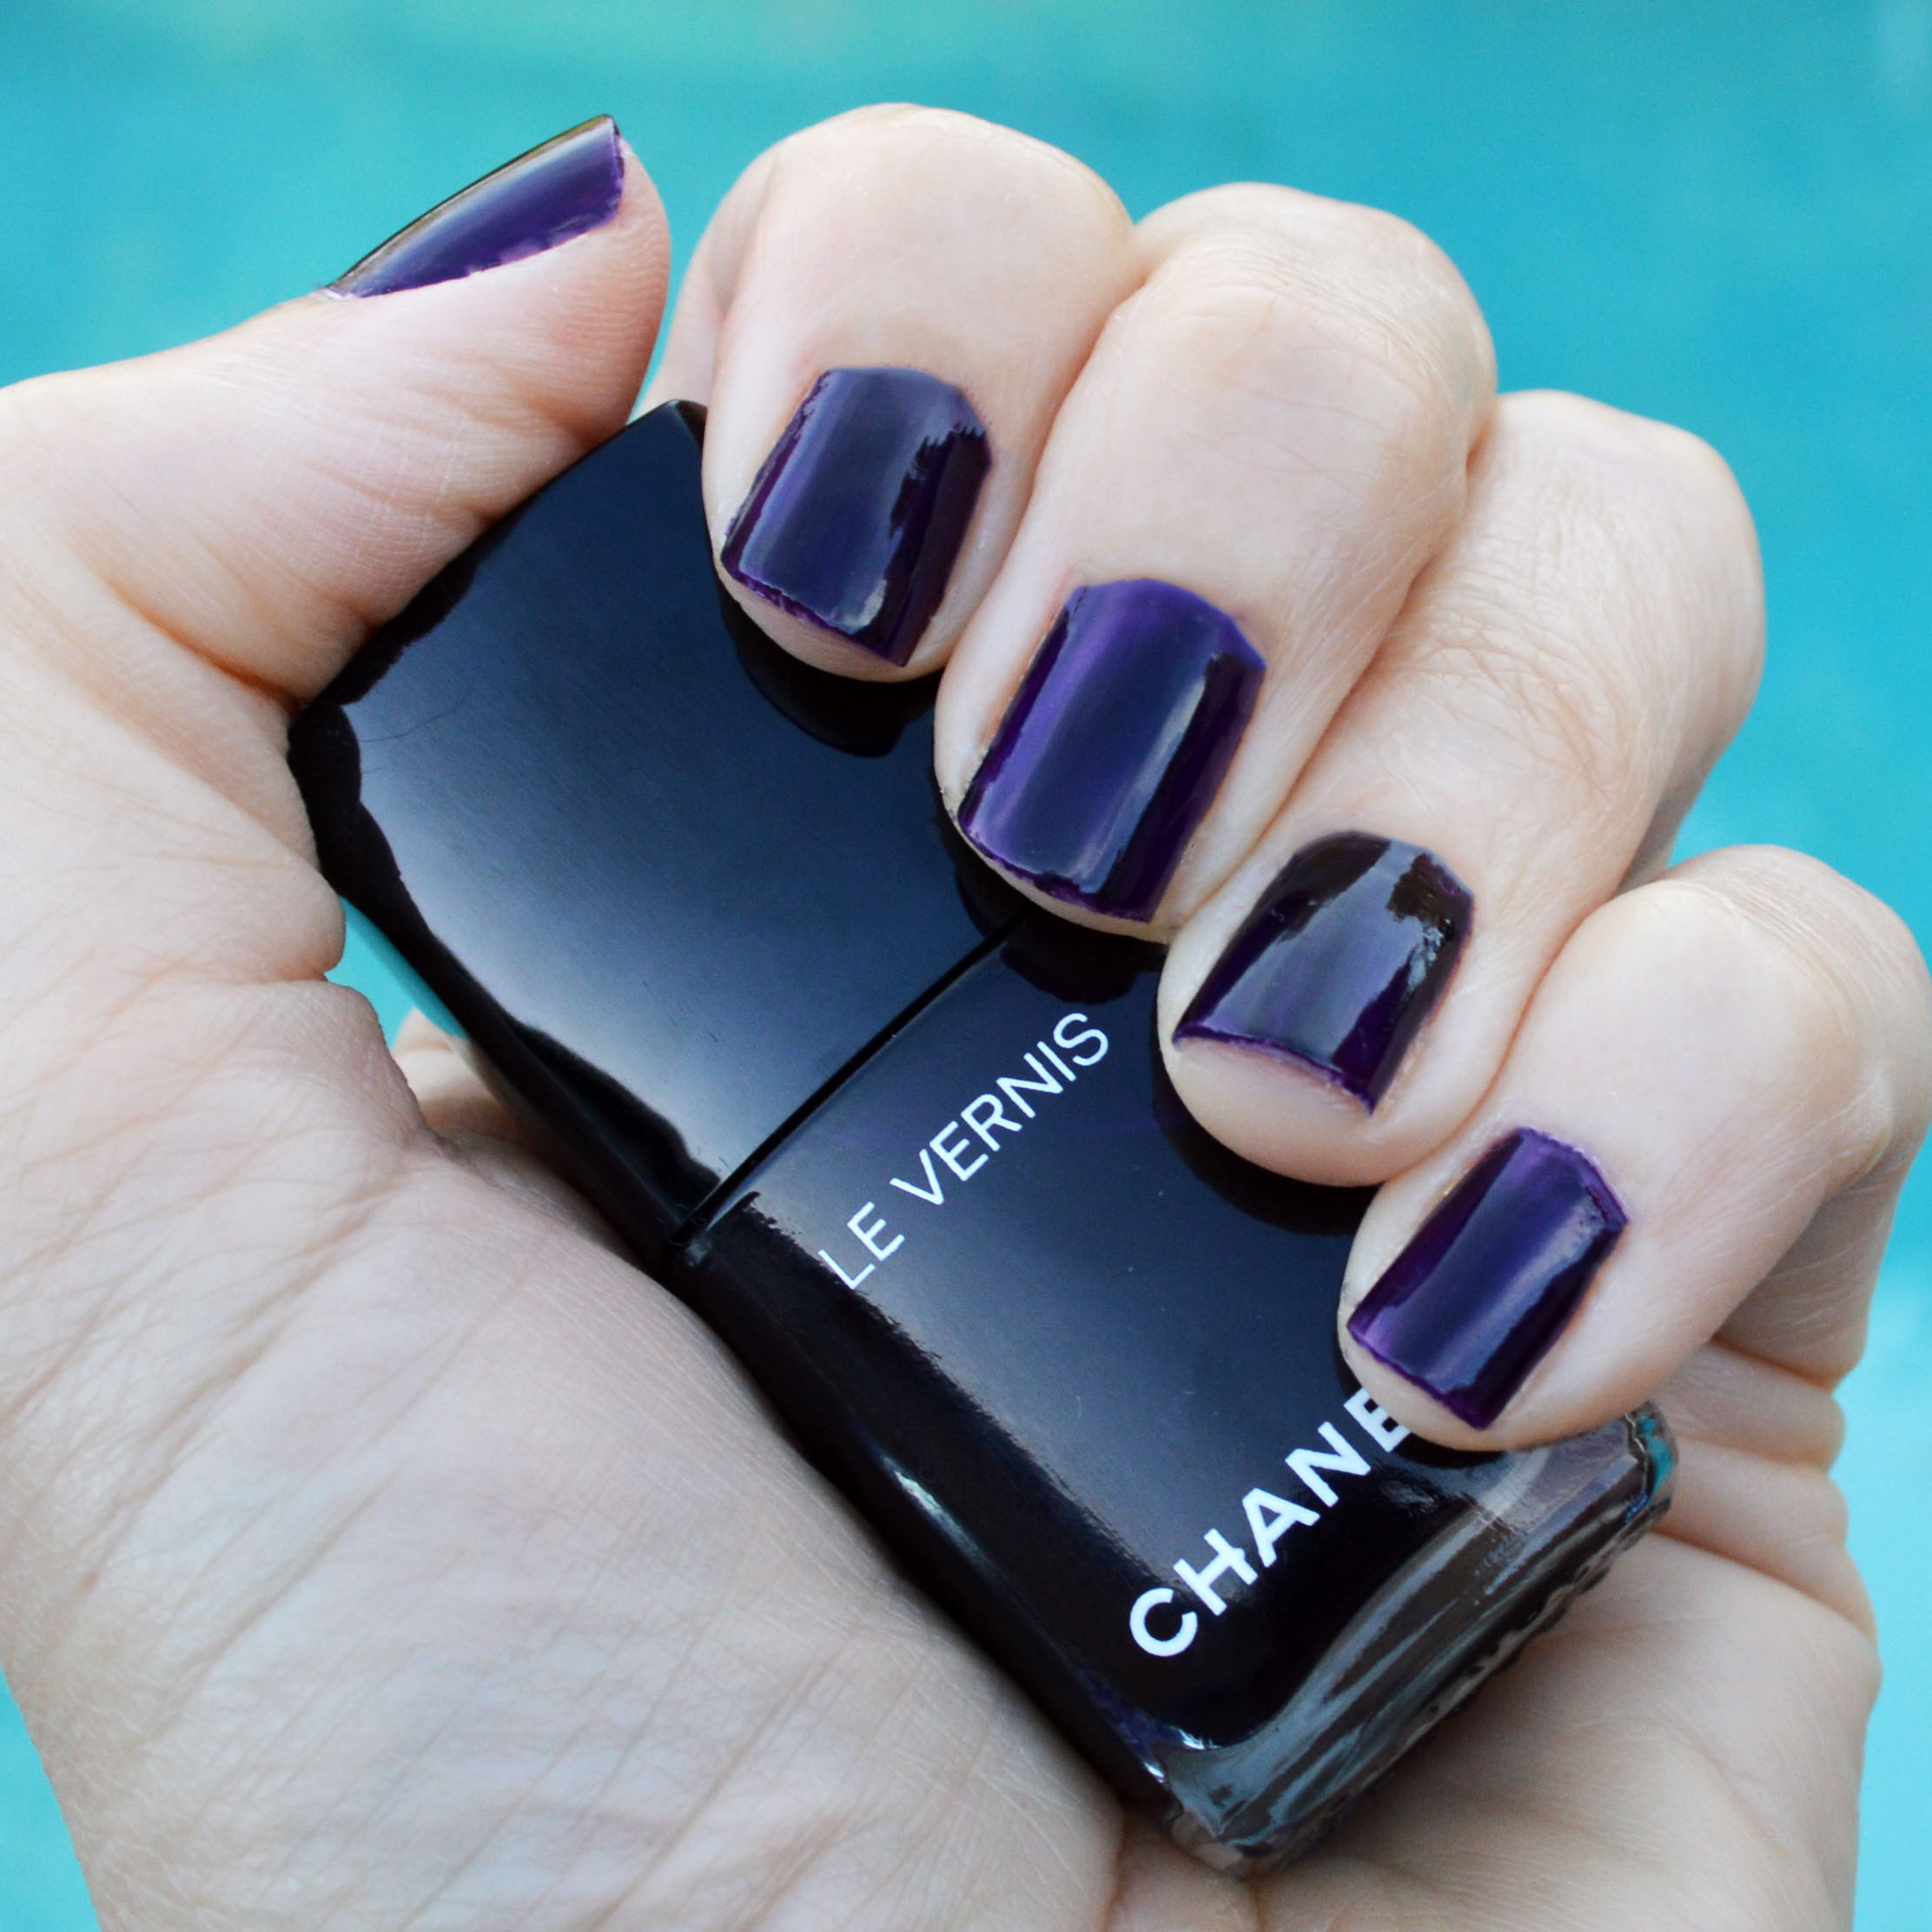 Chanel Roubachka nail polish from the longwear collection